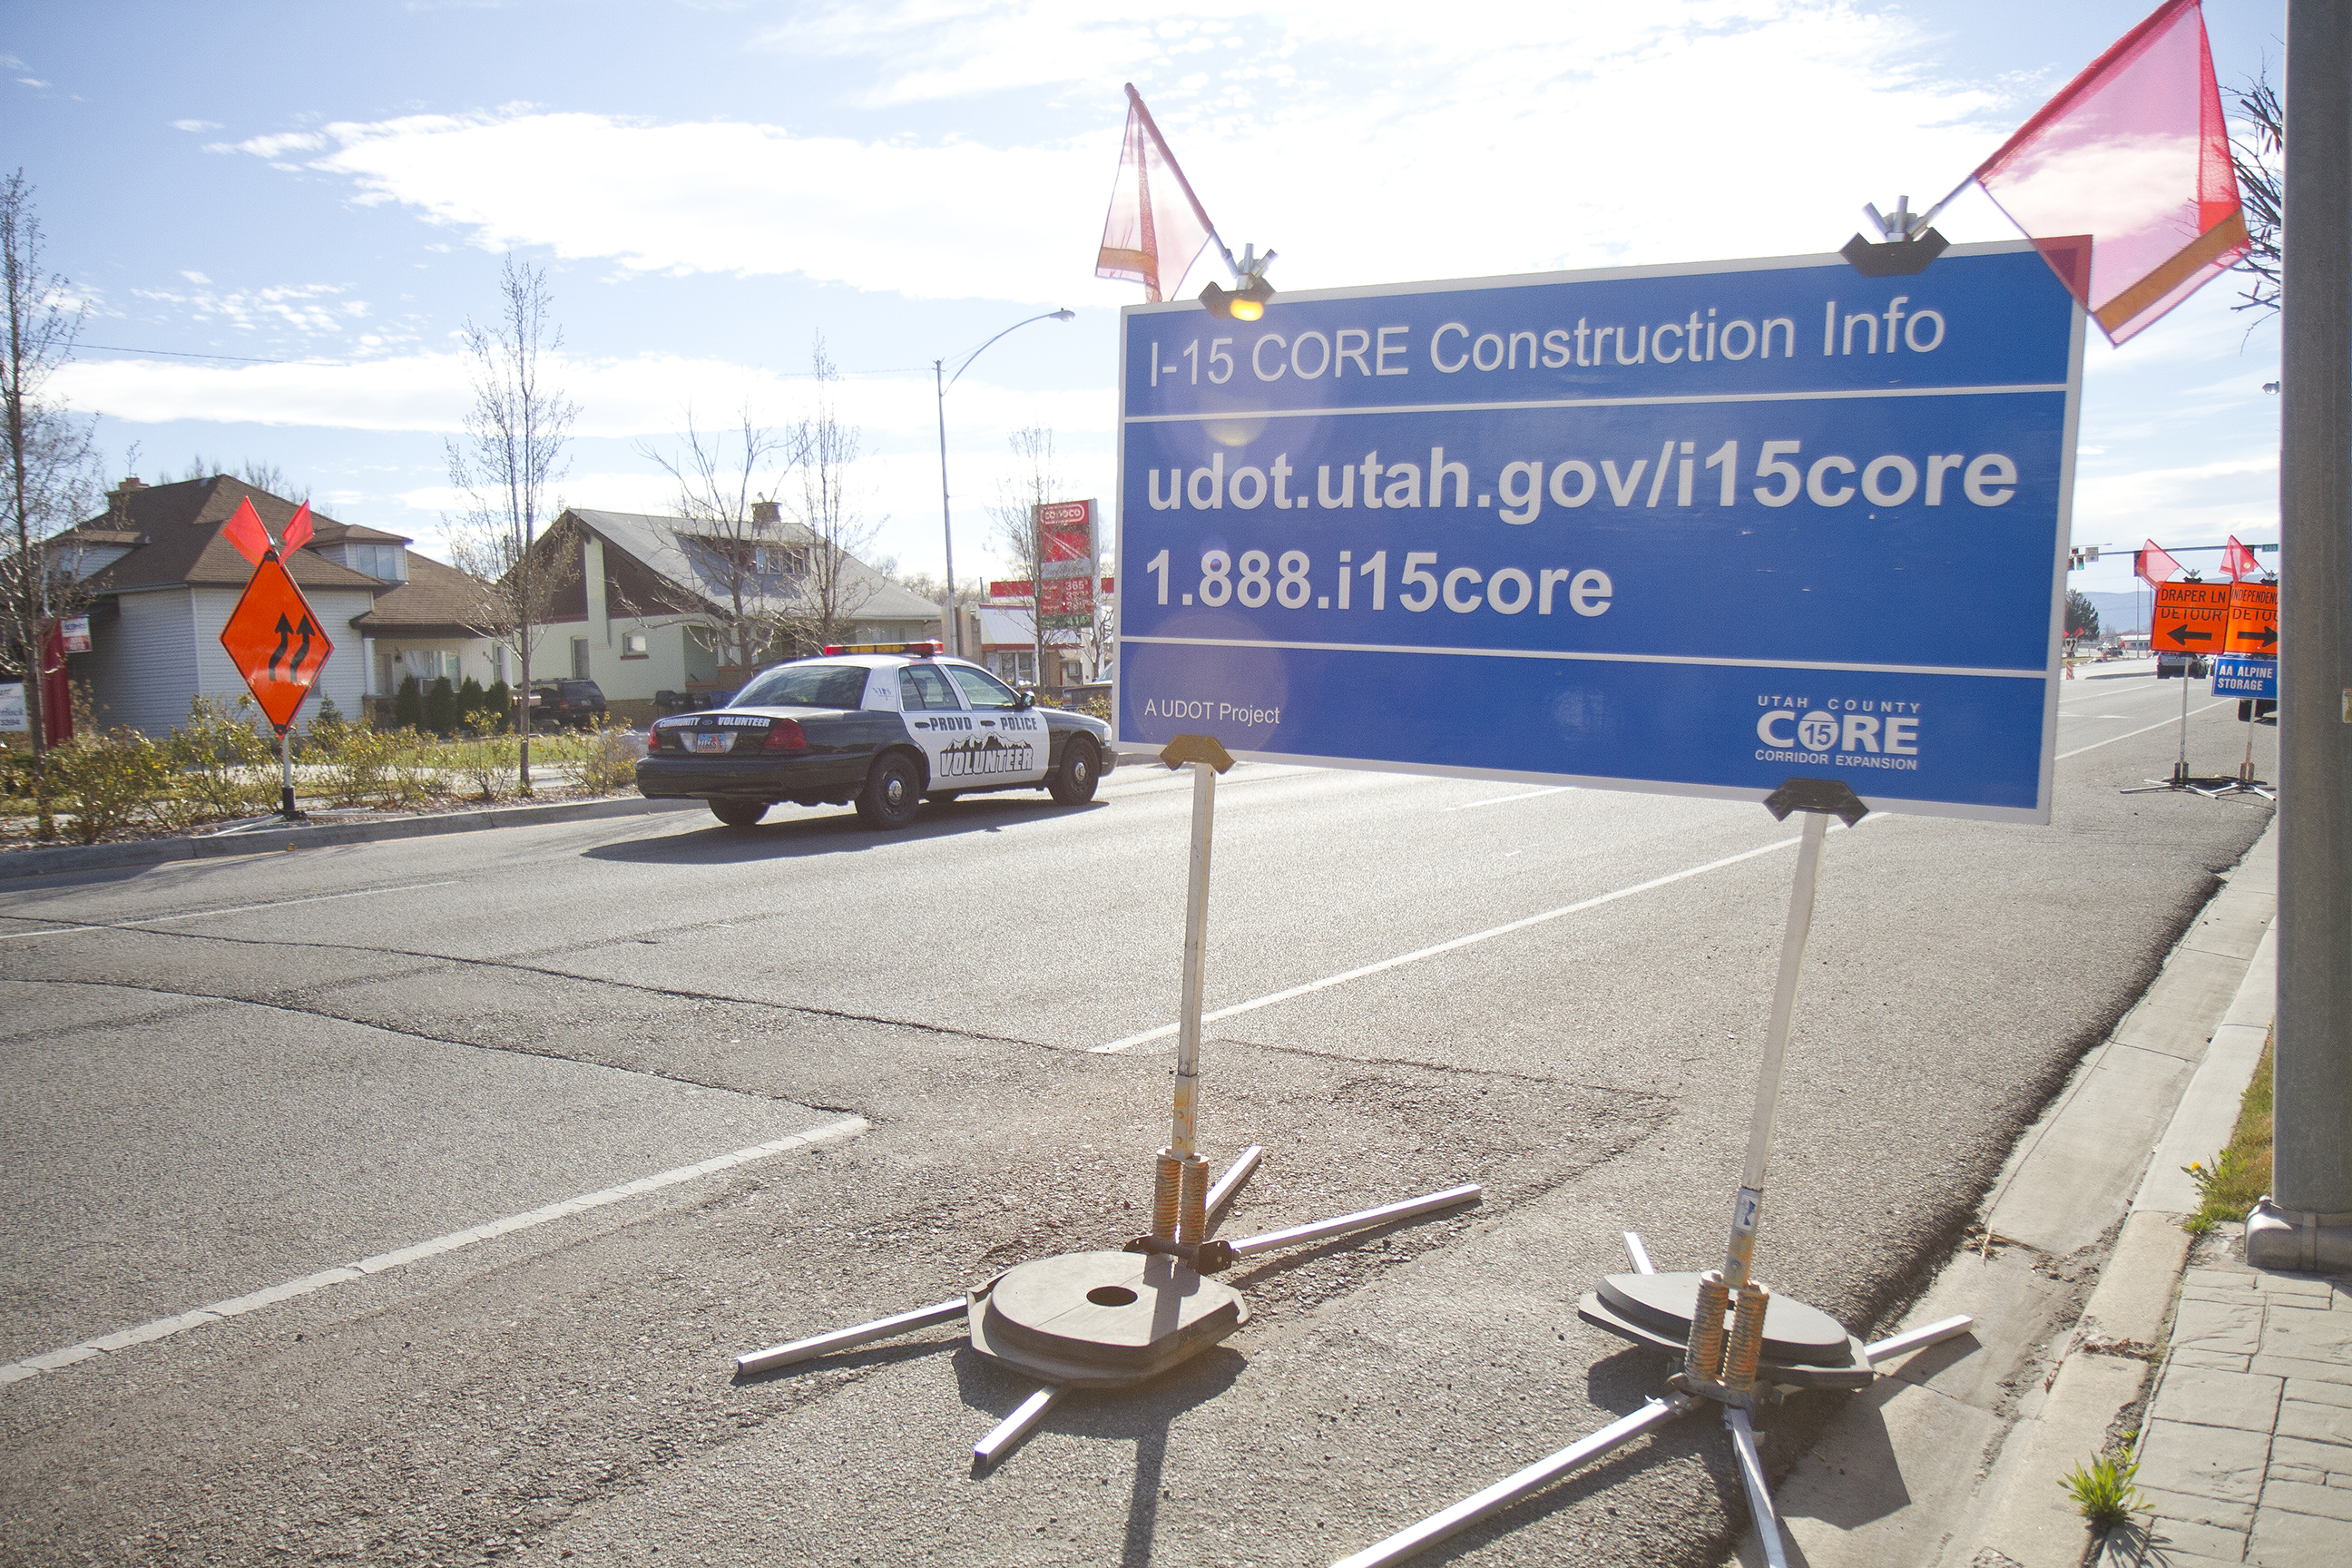 Signs for the I-15 CORE, which now litter Utah County, will soon be removed with the Governor's challenge to finish the project by Thanksgiving.